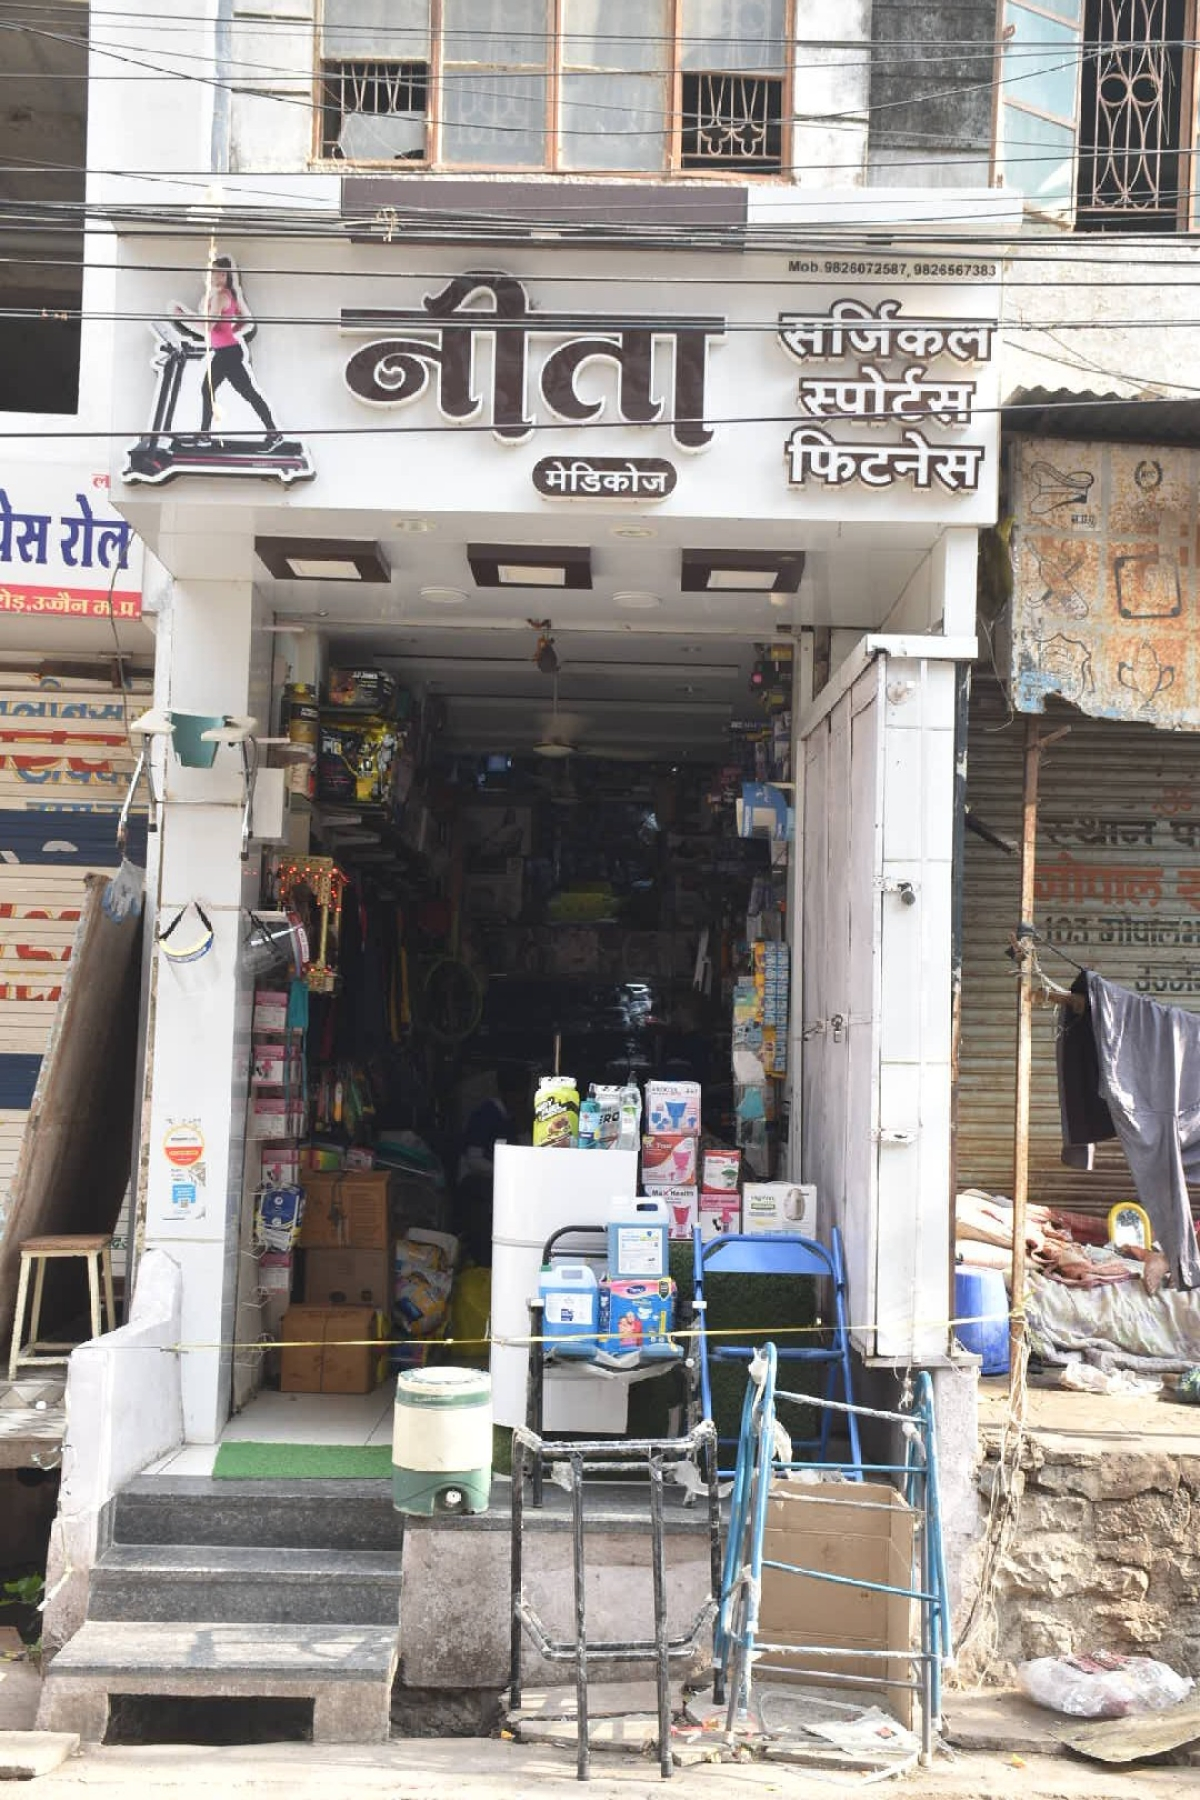 Ujjain: Surgical shop owner booked for finding 'opportunity in corona crisis'